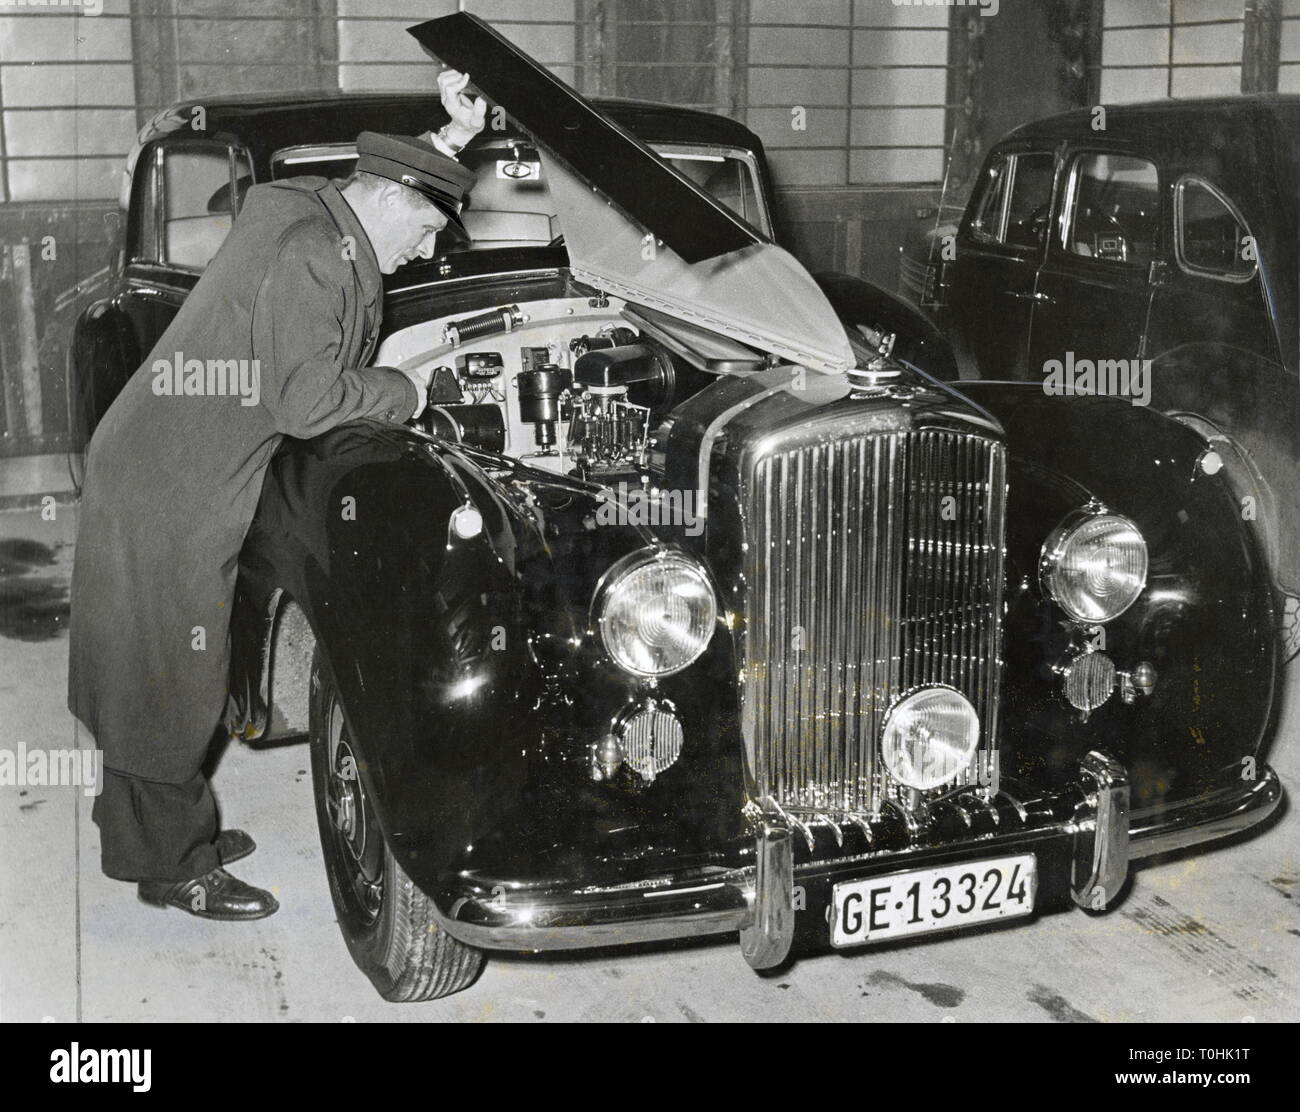 transport / transportation, car, vehicle variants, Rolls-Royce, version phantom, chauffeur, open engine bonnet, Great Britain, circa 1950, Additional-Rights-Clearance-Info-Not-Available - Stock Image